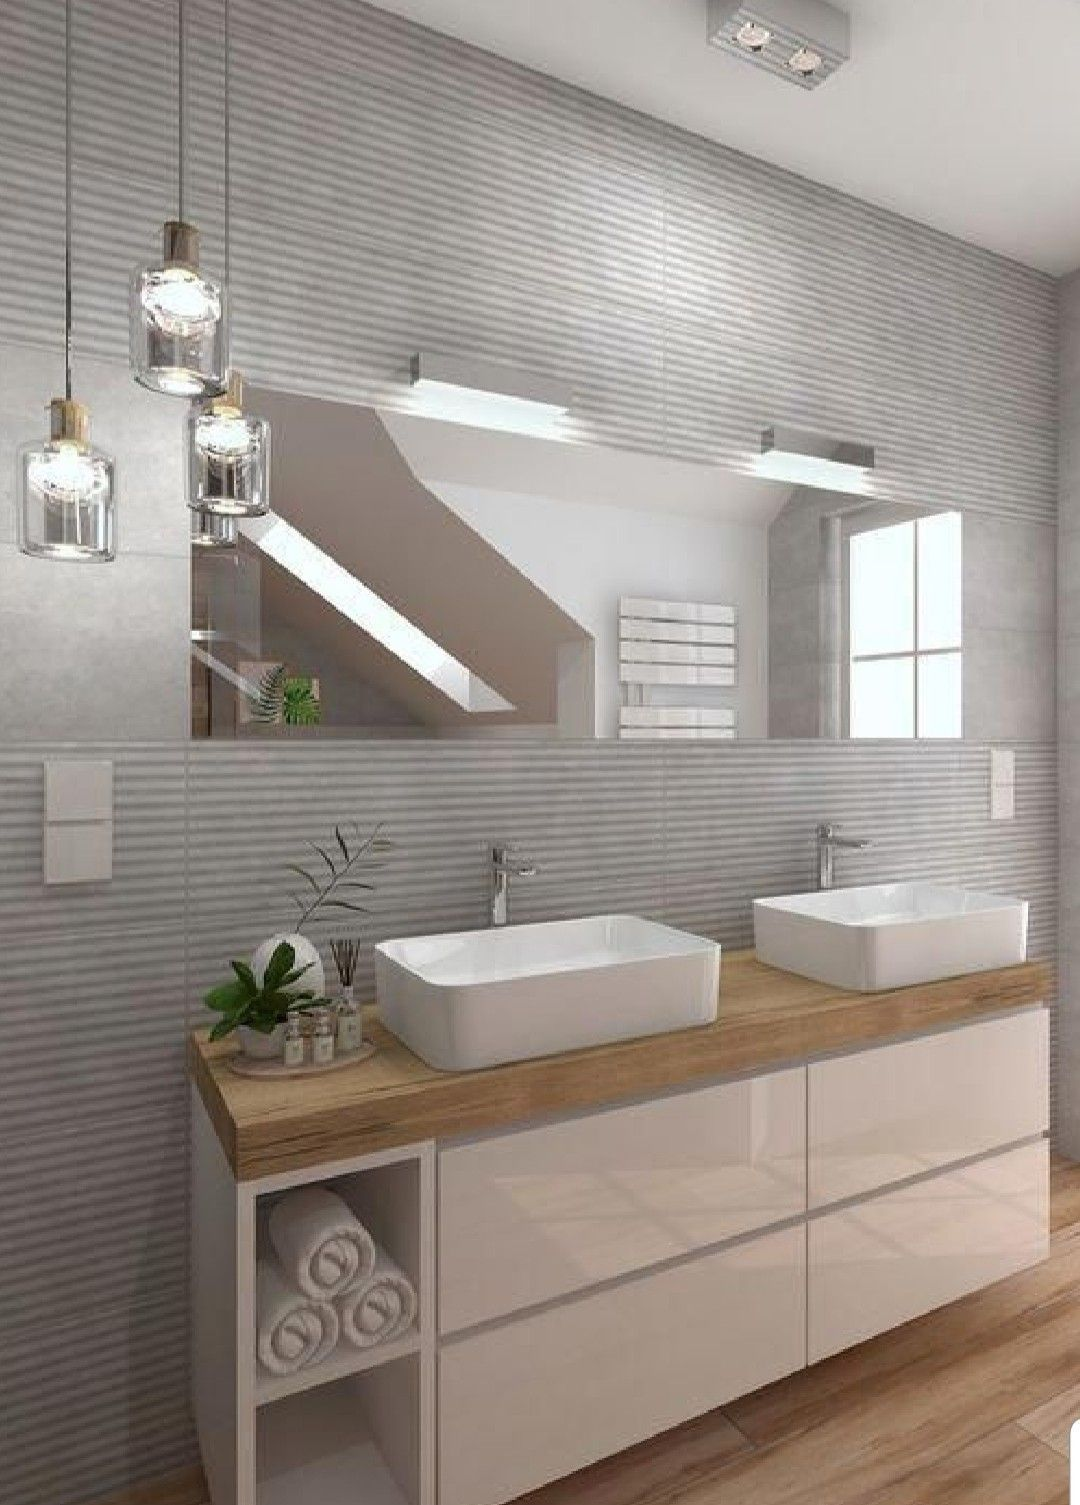 Badezimmerinnenaubtattung Badezimmer Badmobel Badezimmermobel Badmobel Set Spiegelschrank Bad In 2020 Bathroom Interior Design Bathroom Interior Bathroom Design